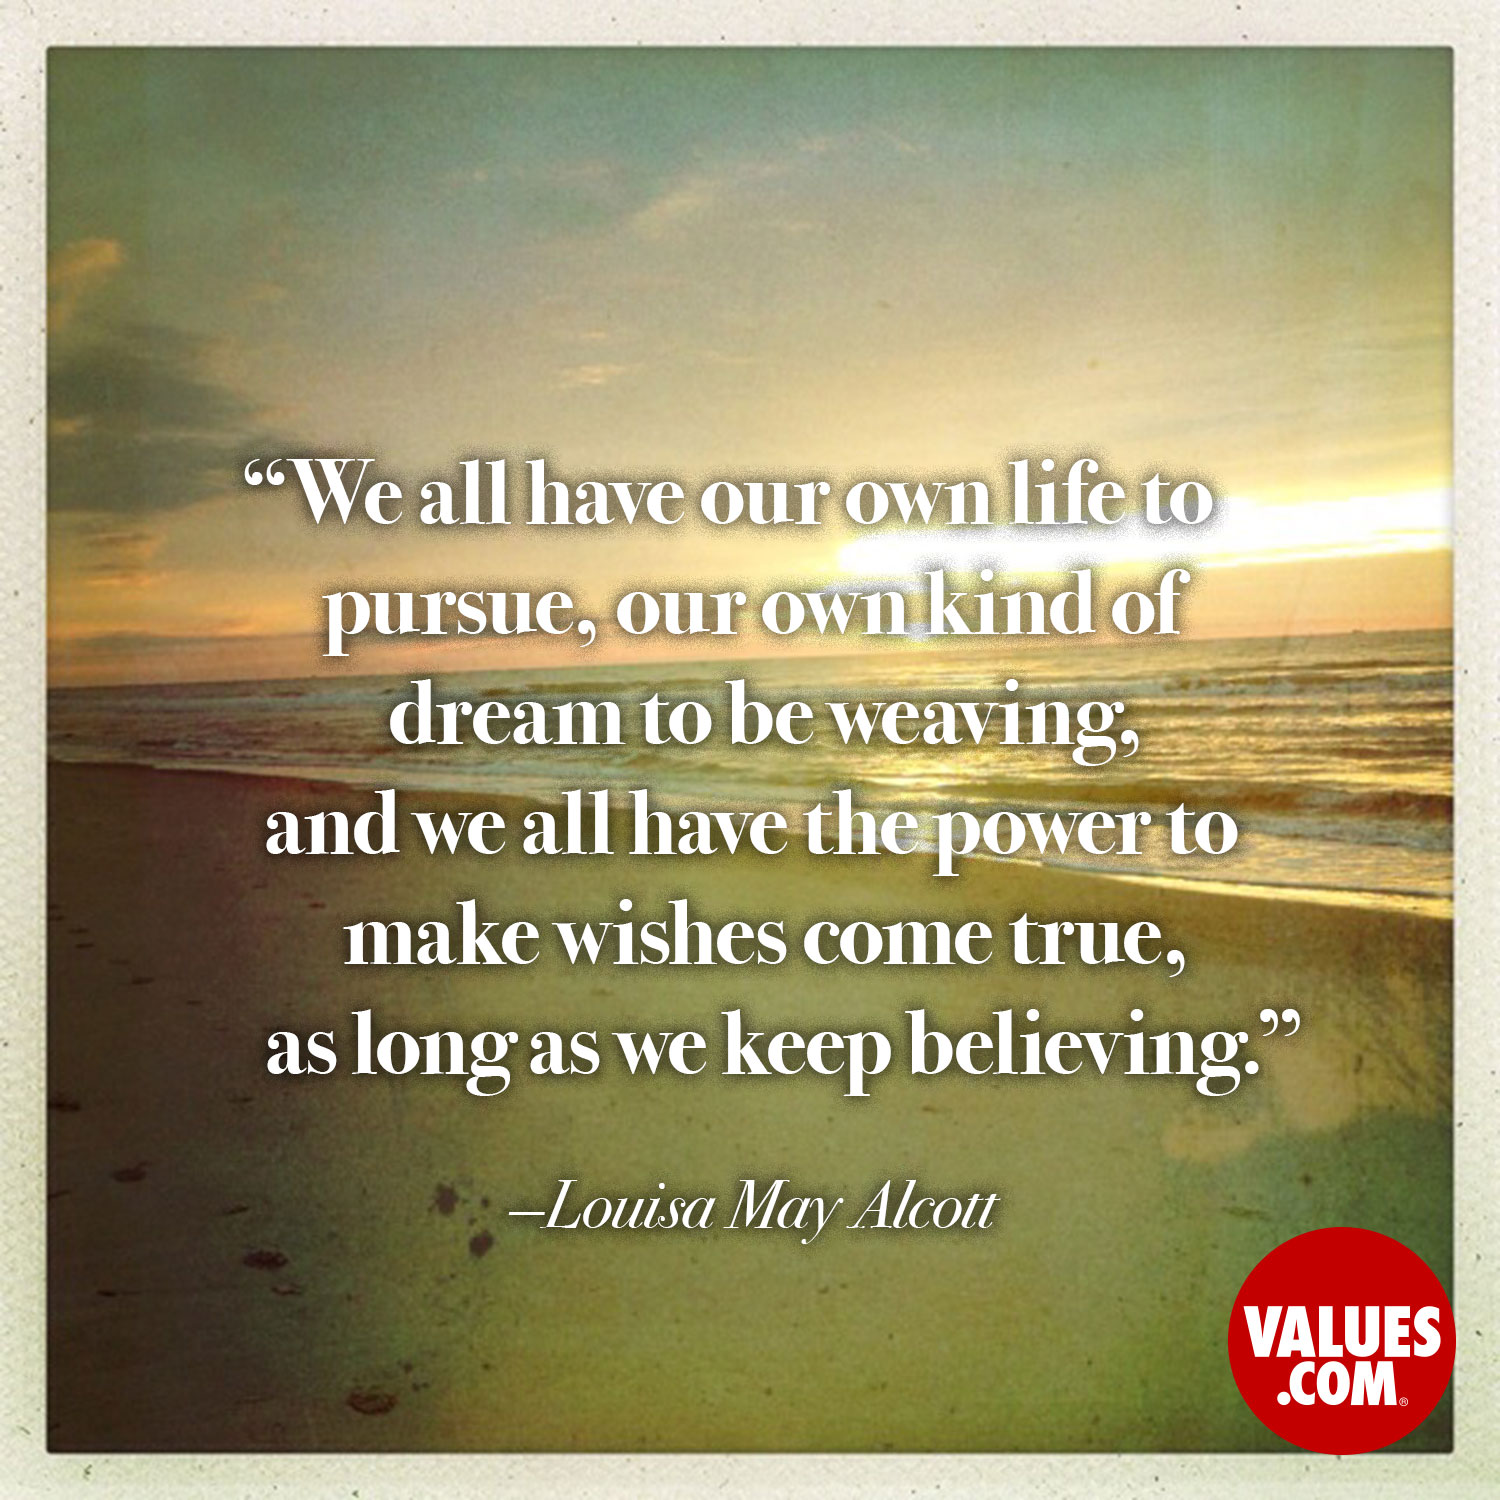 We all have our own life to pursue, our own kind of dream to be weaving, and we all have the power to make wishes come true, as long as we keep believing. —Louisa May Alcott